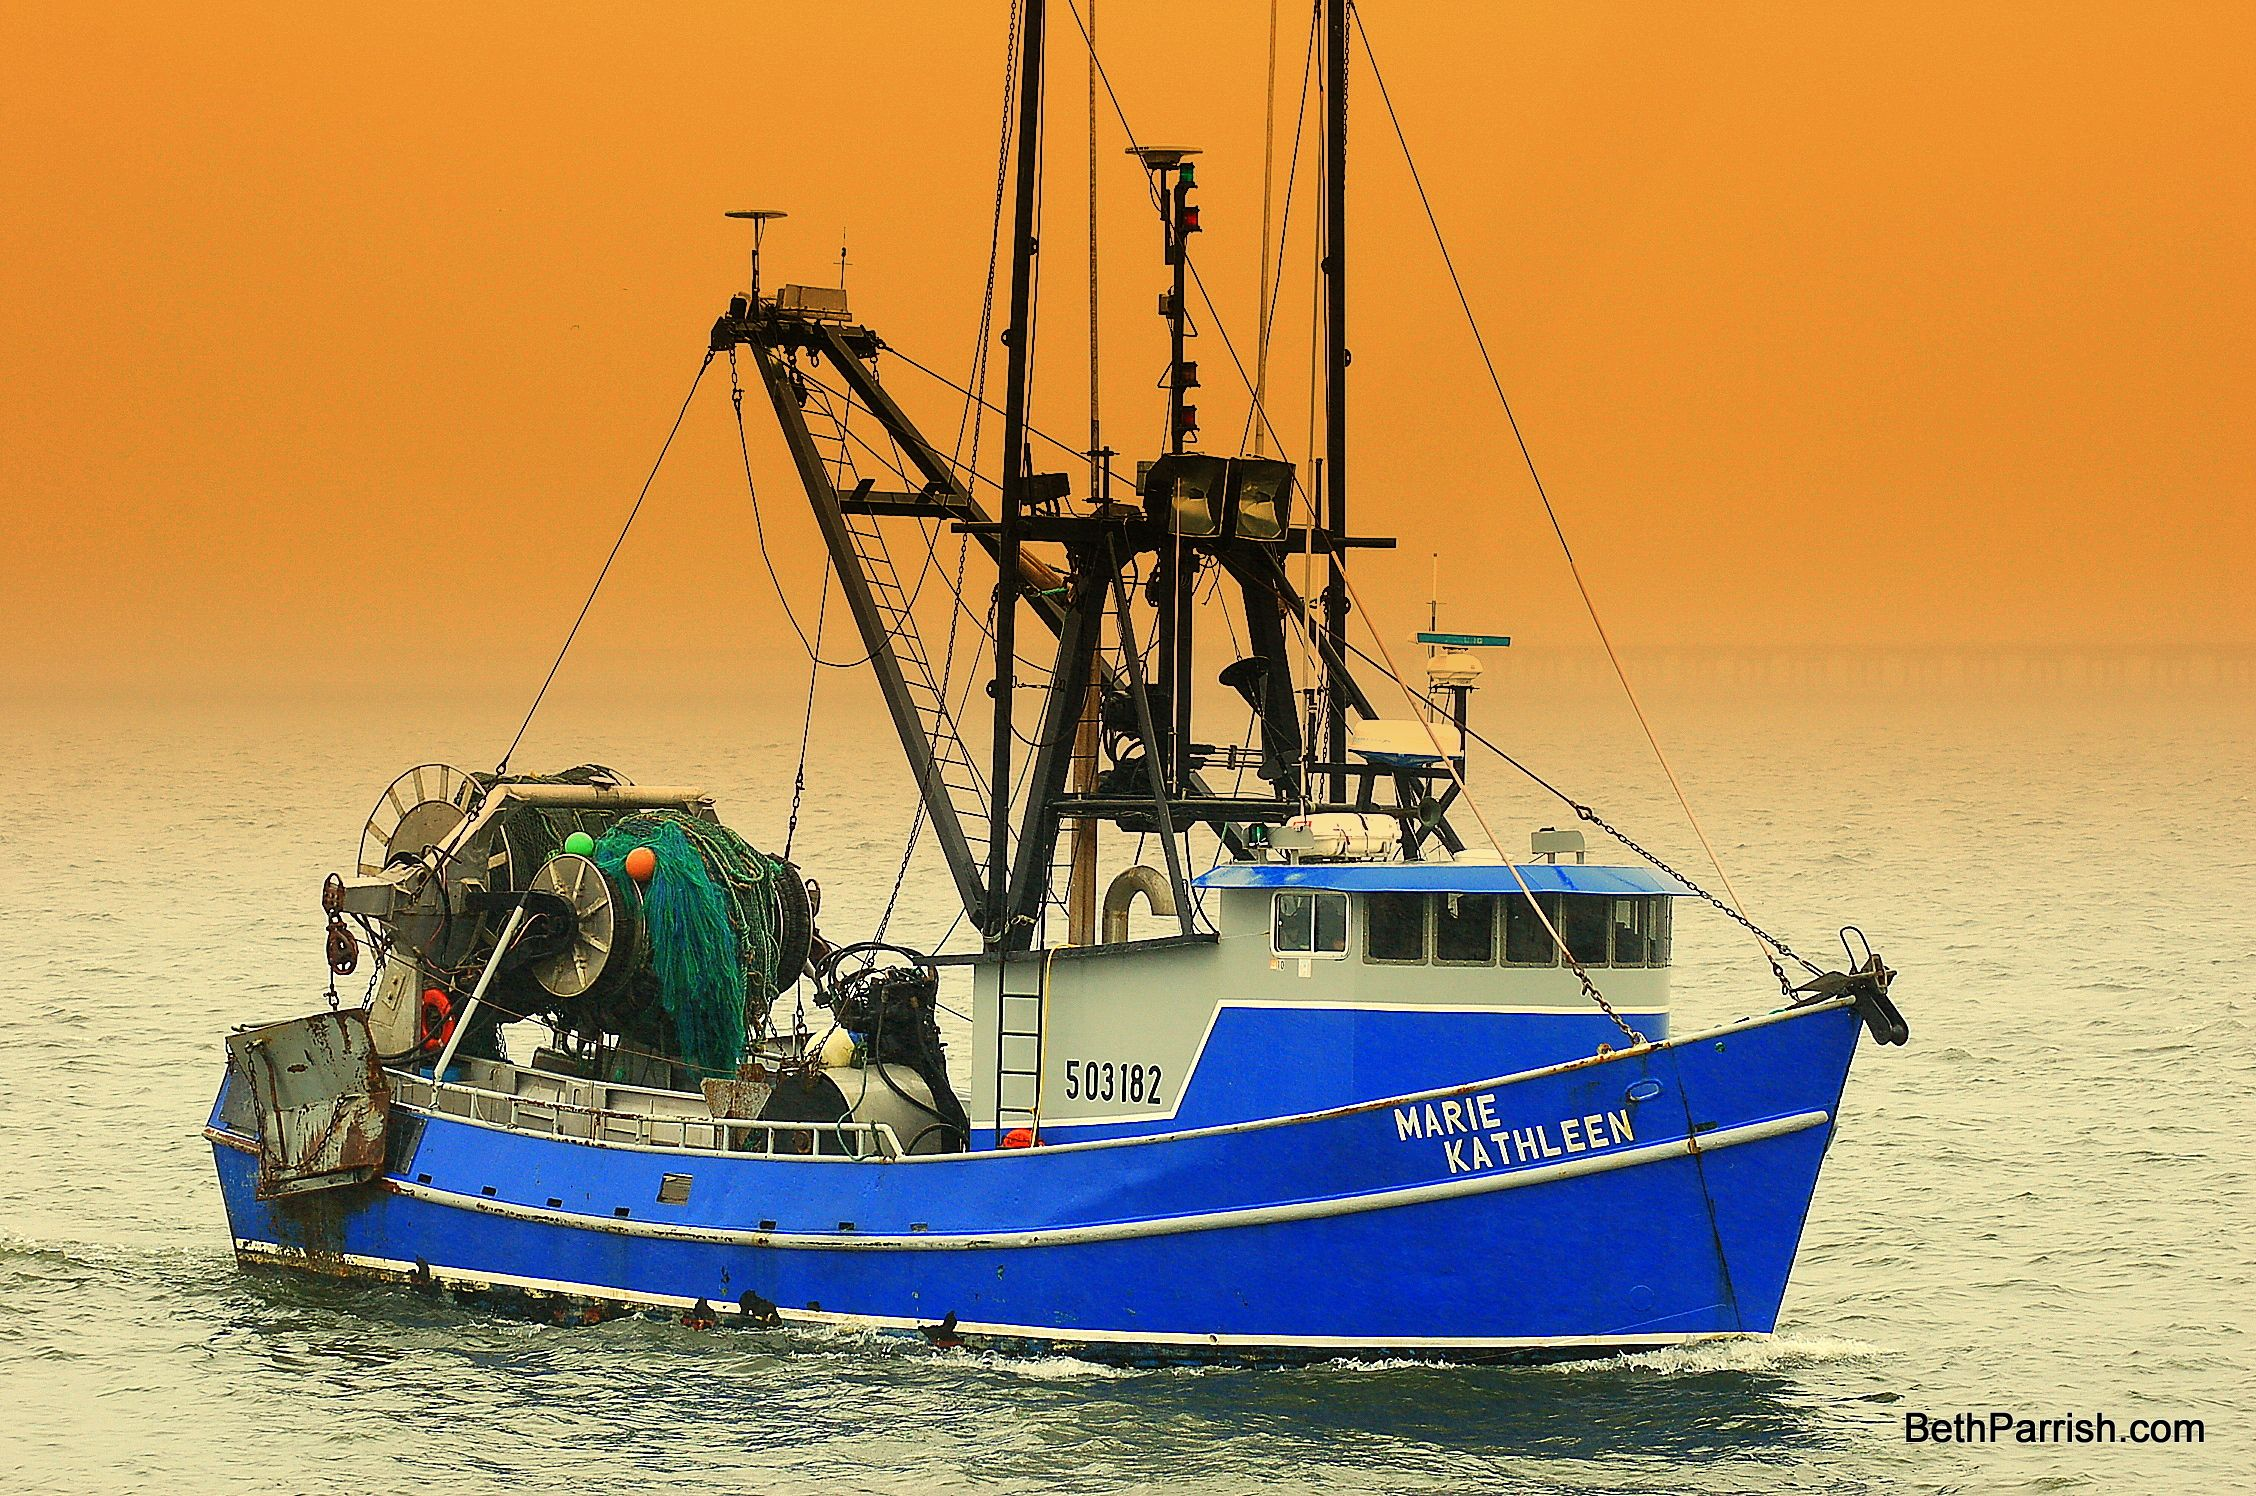 The Commercial Fishing Vessel Marie Kathleen Home Port Is Astoria